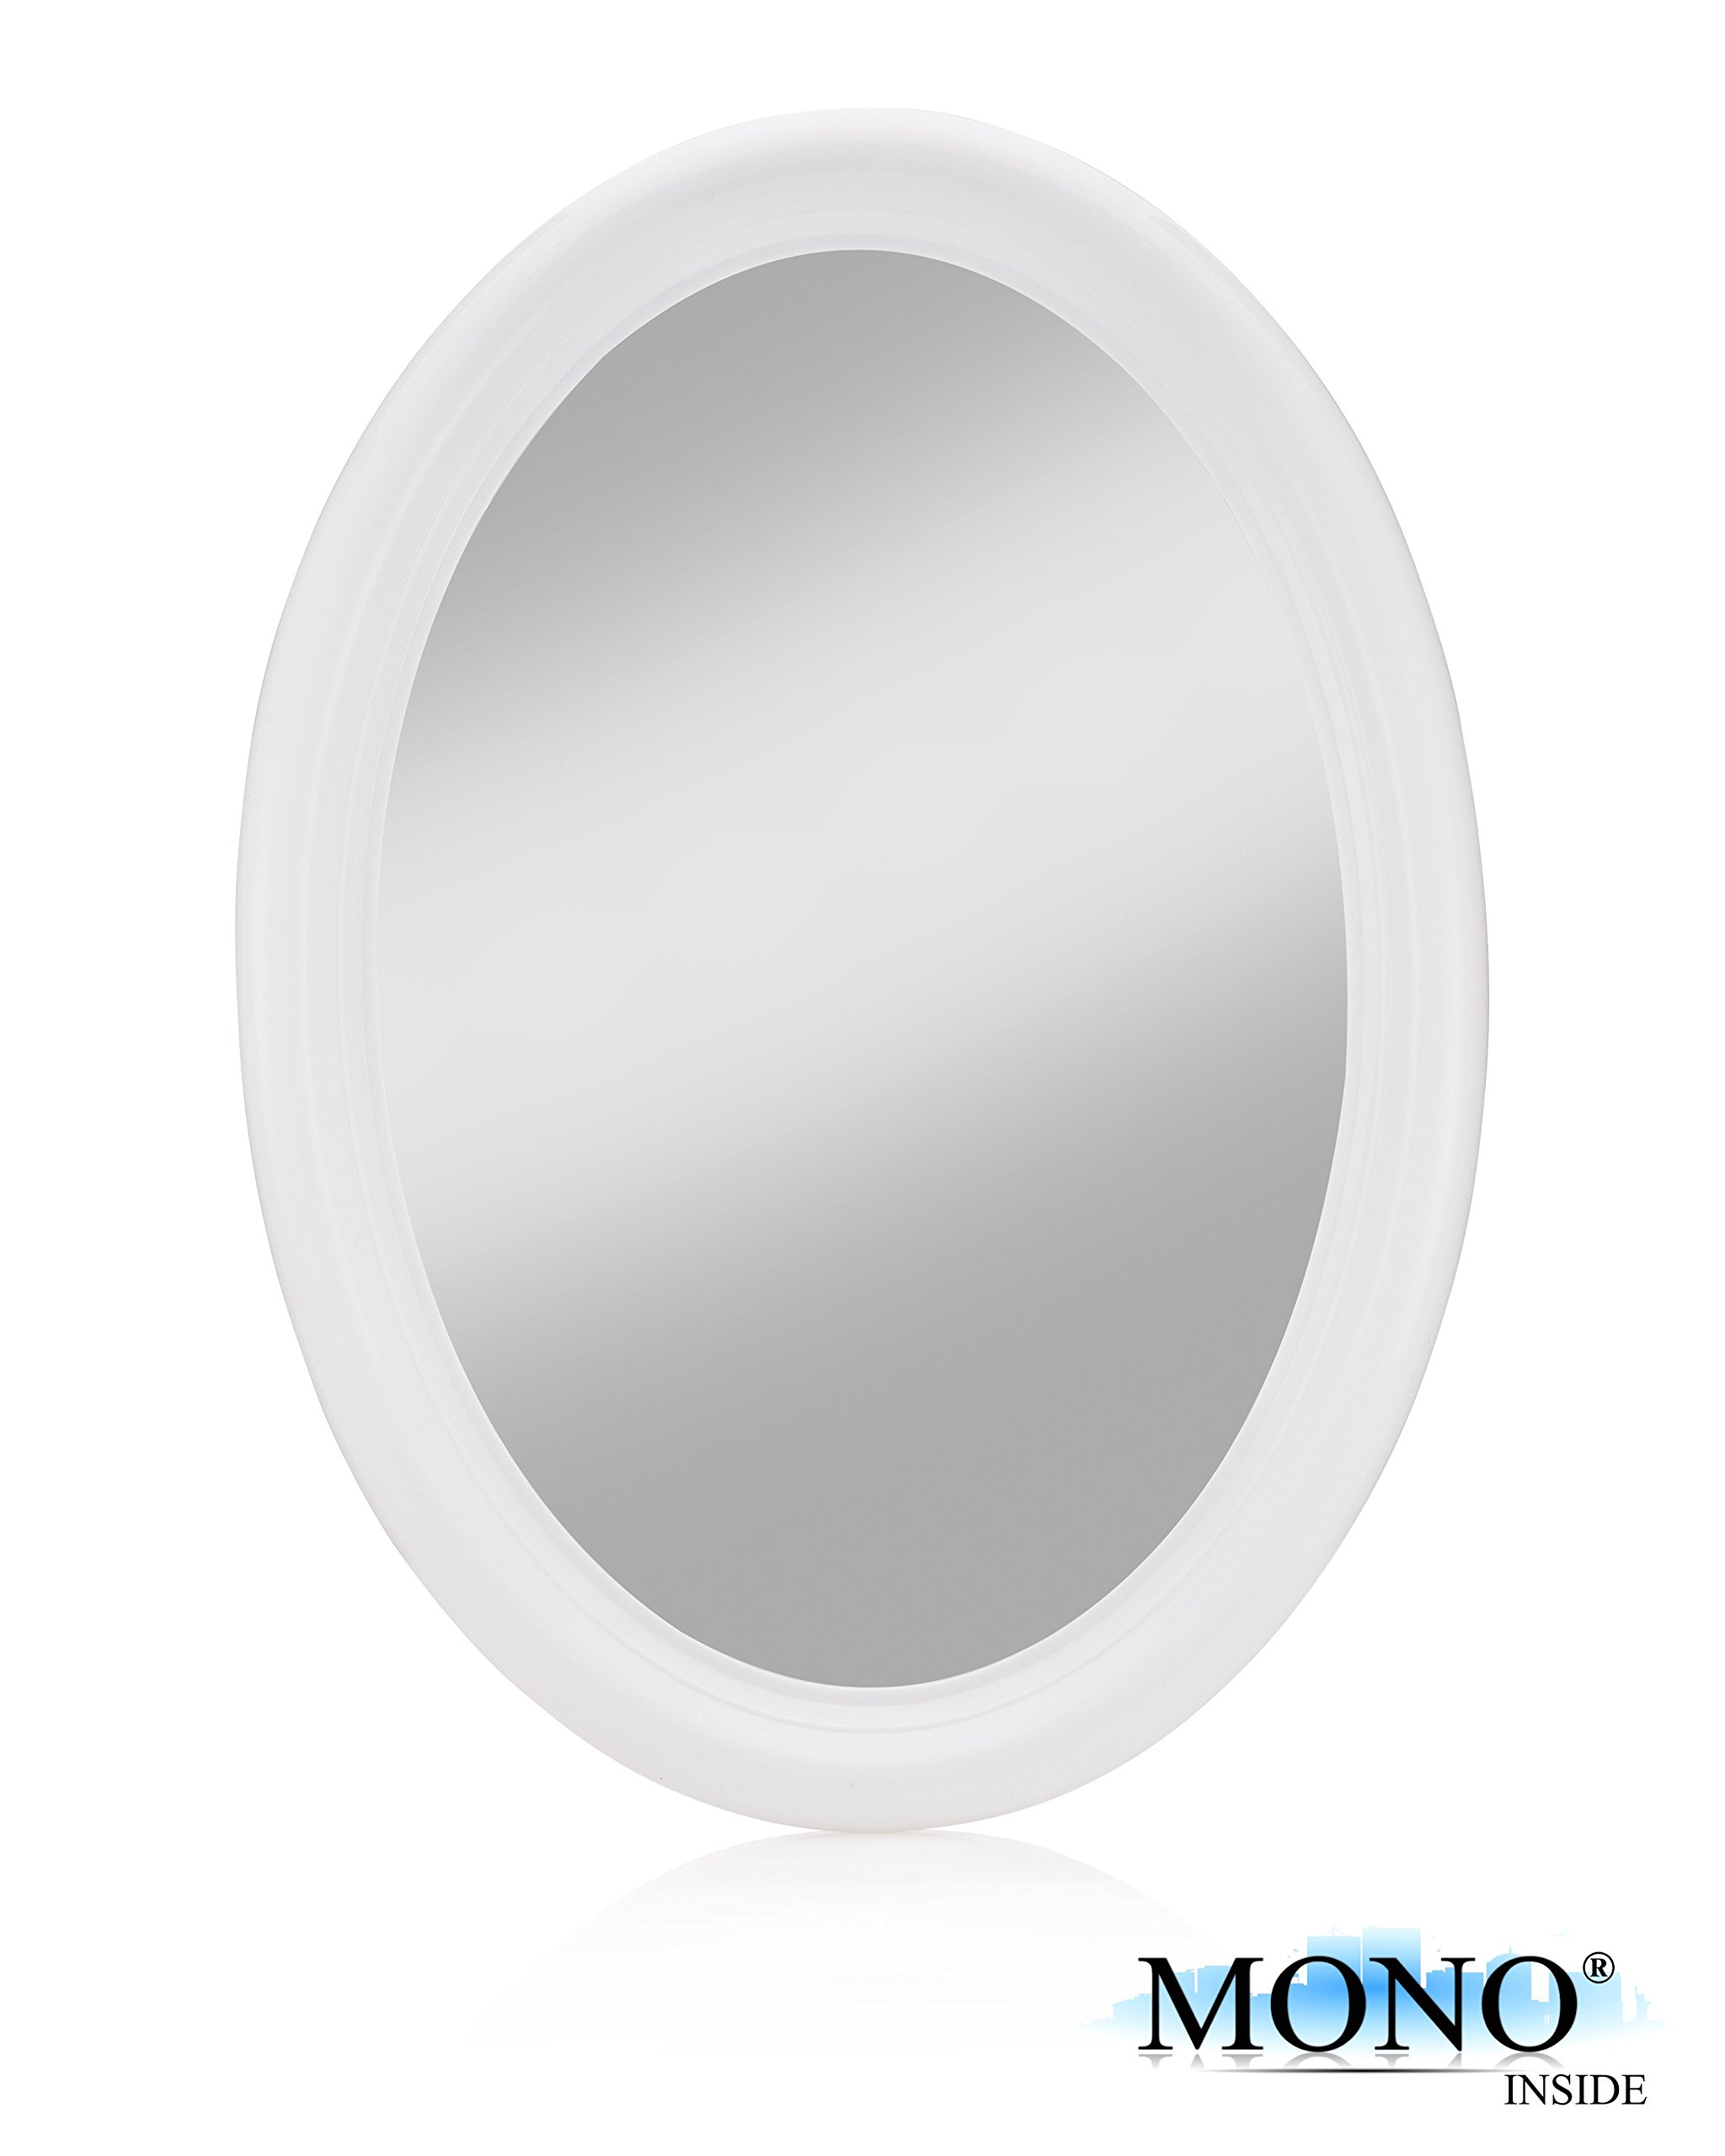 "MONOINSIDE® Small Hanging Oval Wall Mirror, Framed Decorative Oval Wall Mirror for Makeup Vanity Table, Plastic, 14"" x 10"" inches, White"